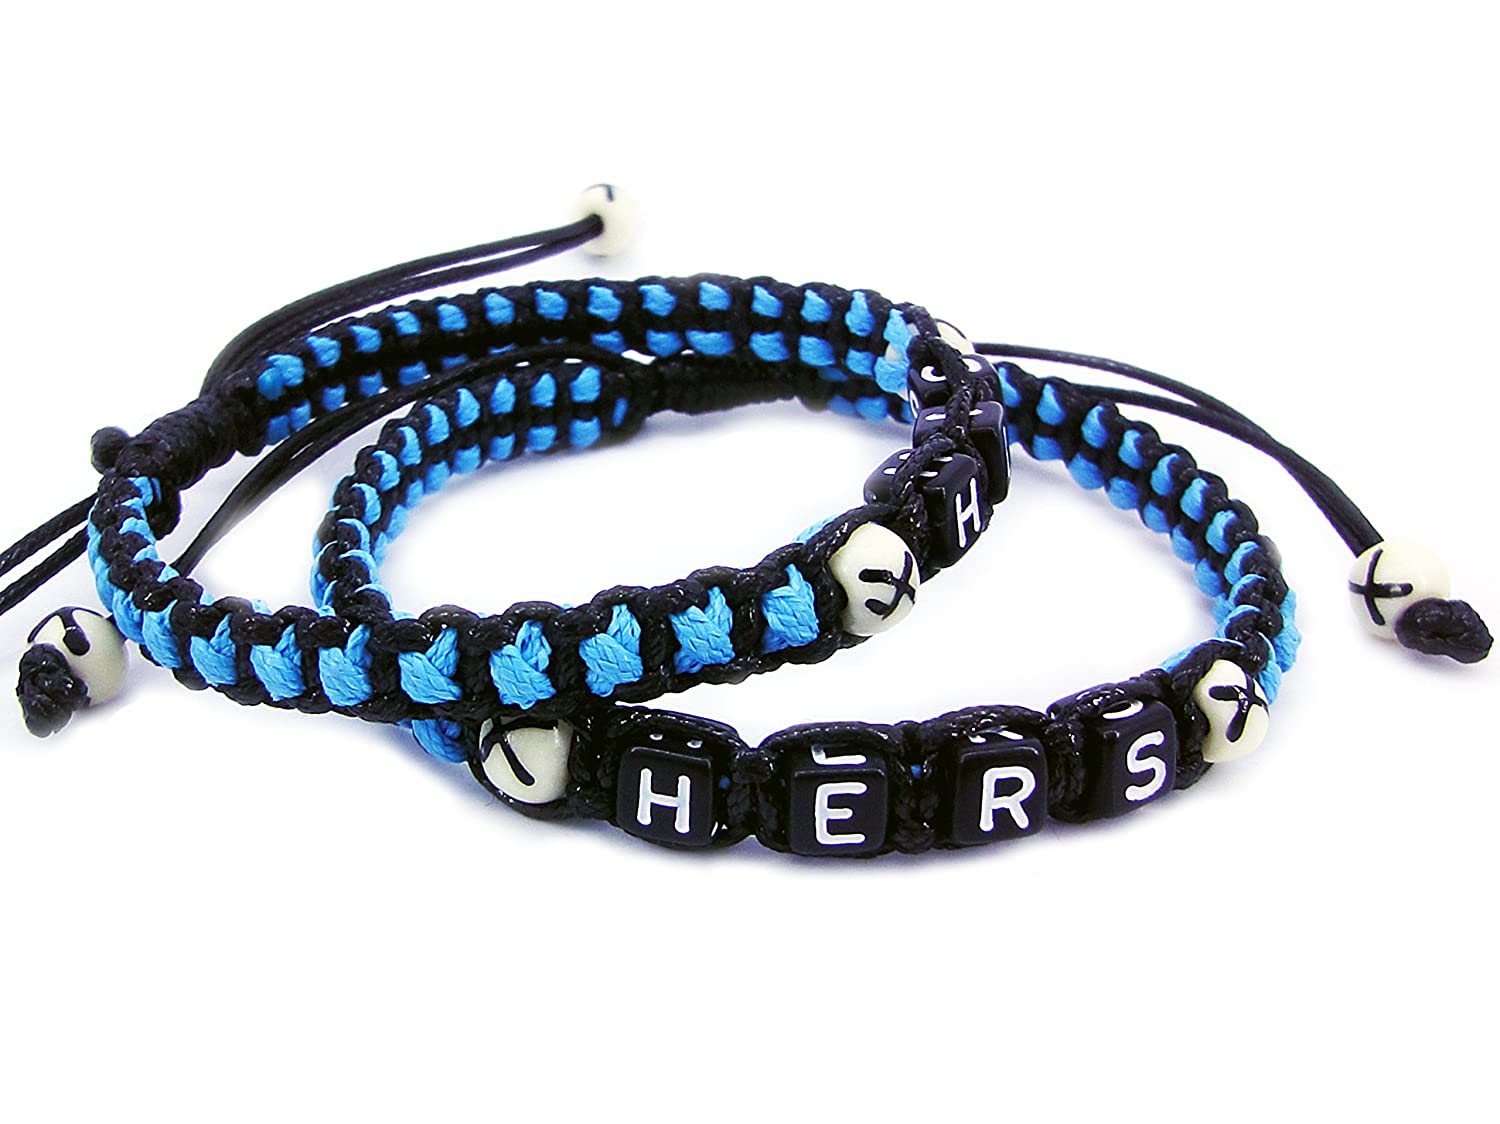 Amazon.com: His and Hers Couple Bracelets Matching Handmade ...